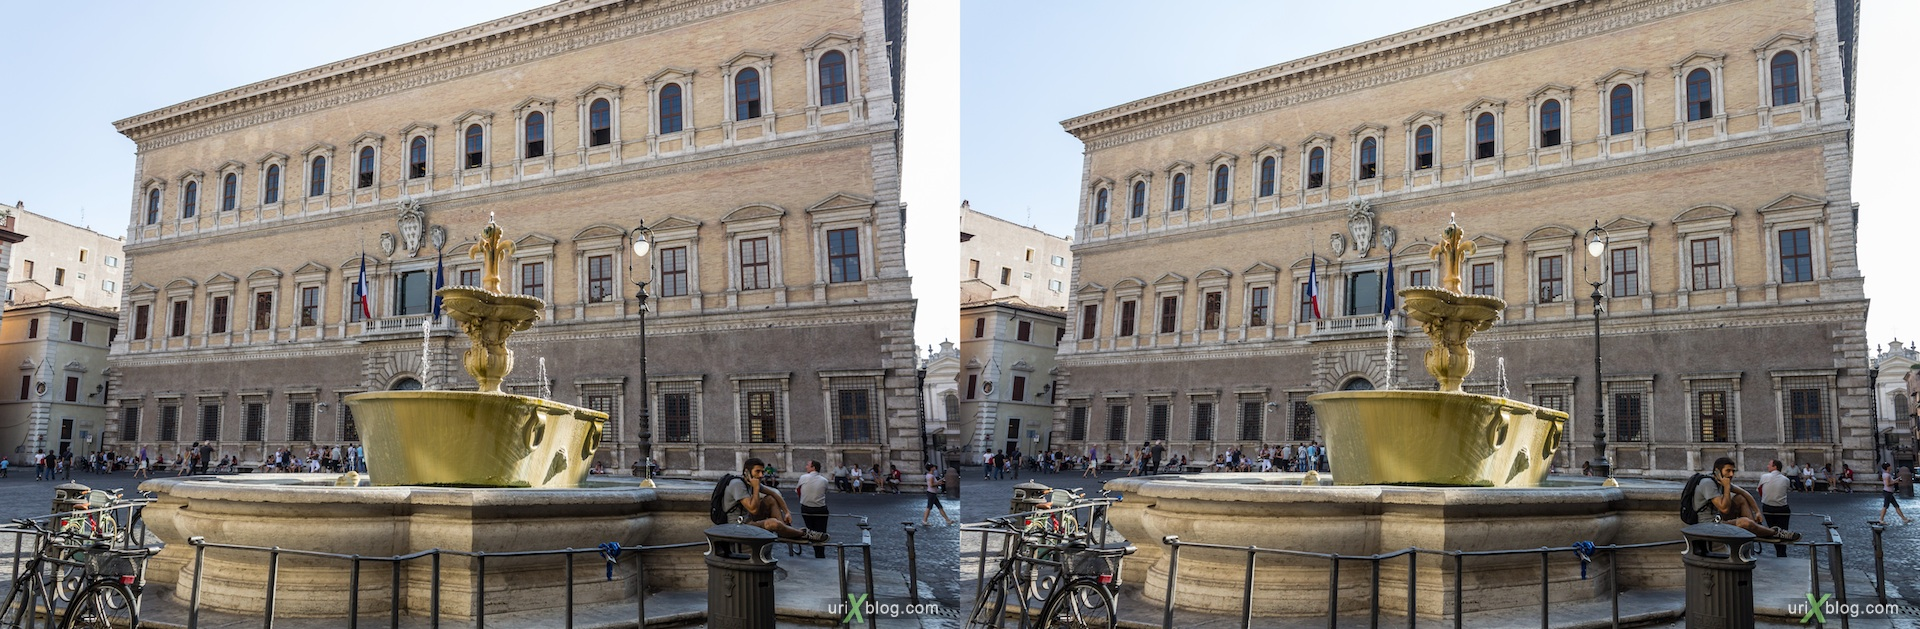 2012, fountain, Farnese square, Rome, Italy, 3D, stereo pair, cross-eyed, crossview, cross view stereo pair